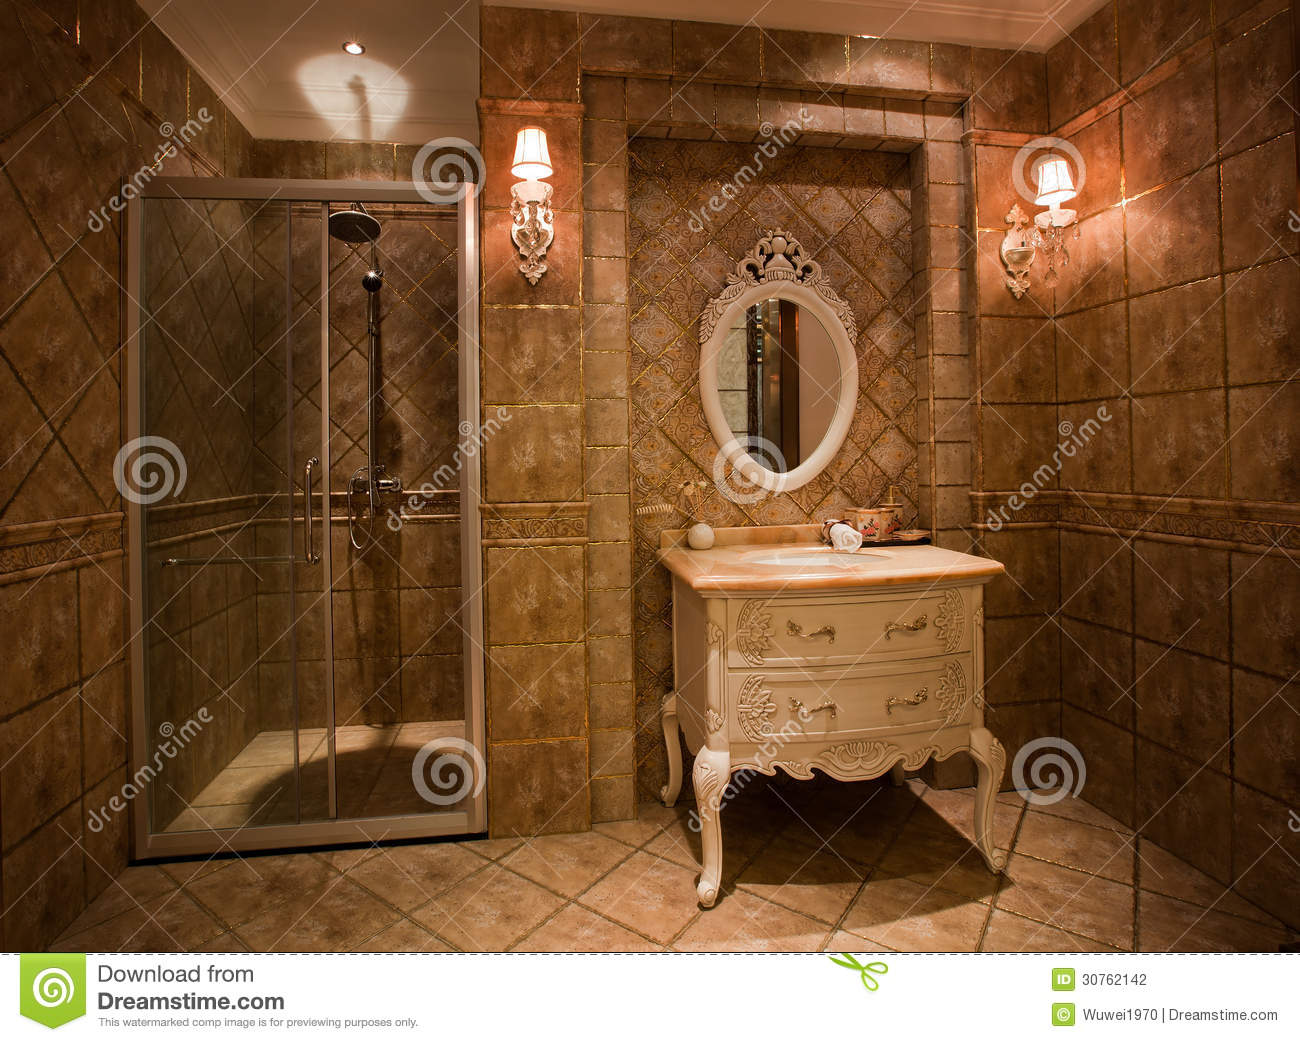 The shower room stock photography image 30762142 - Doucheruimte m ...